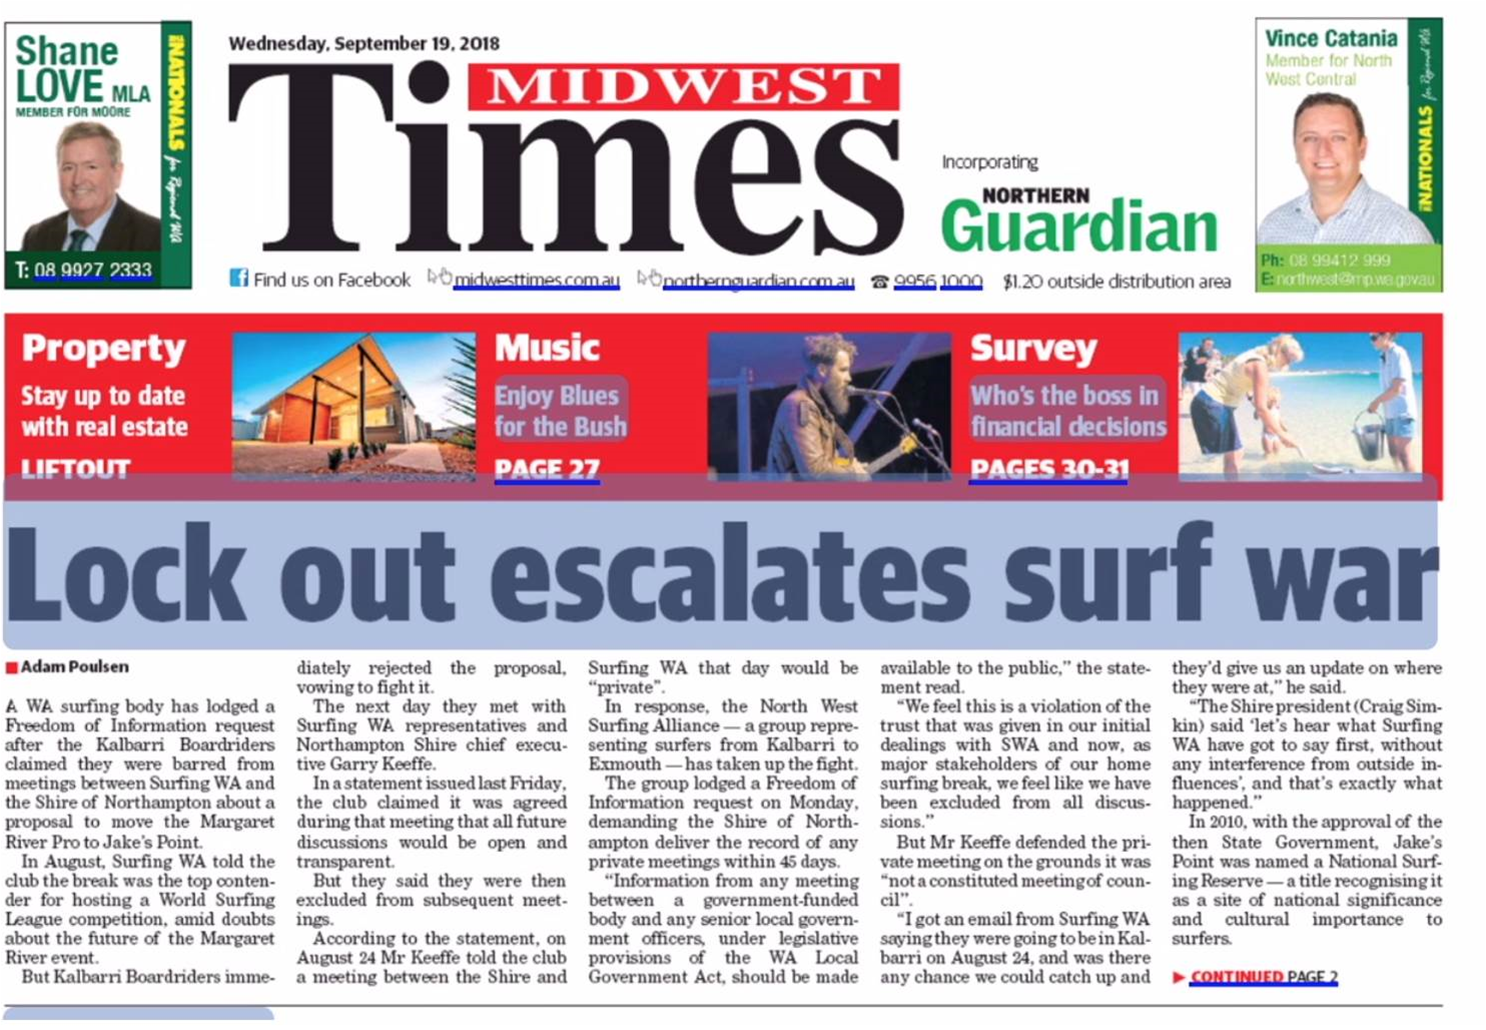 North West Surfers Demand Involvement in All WSL Dialogue.